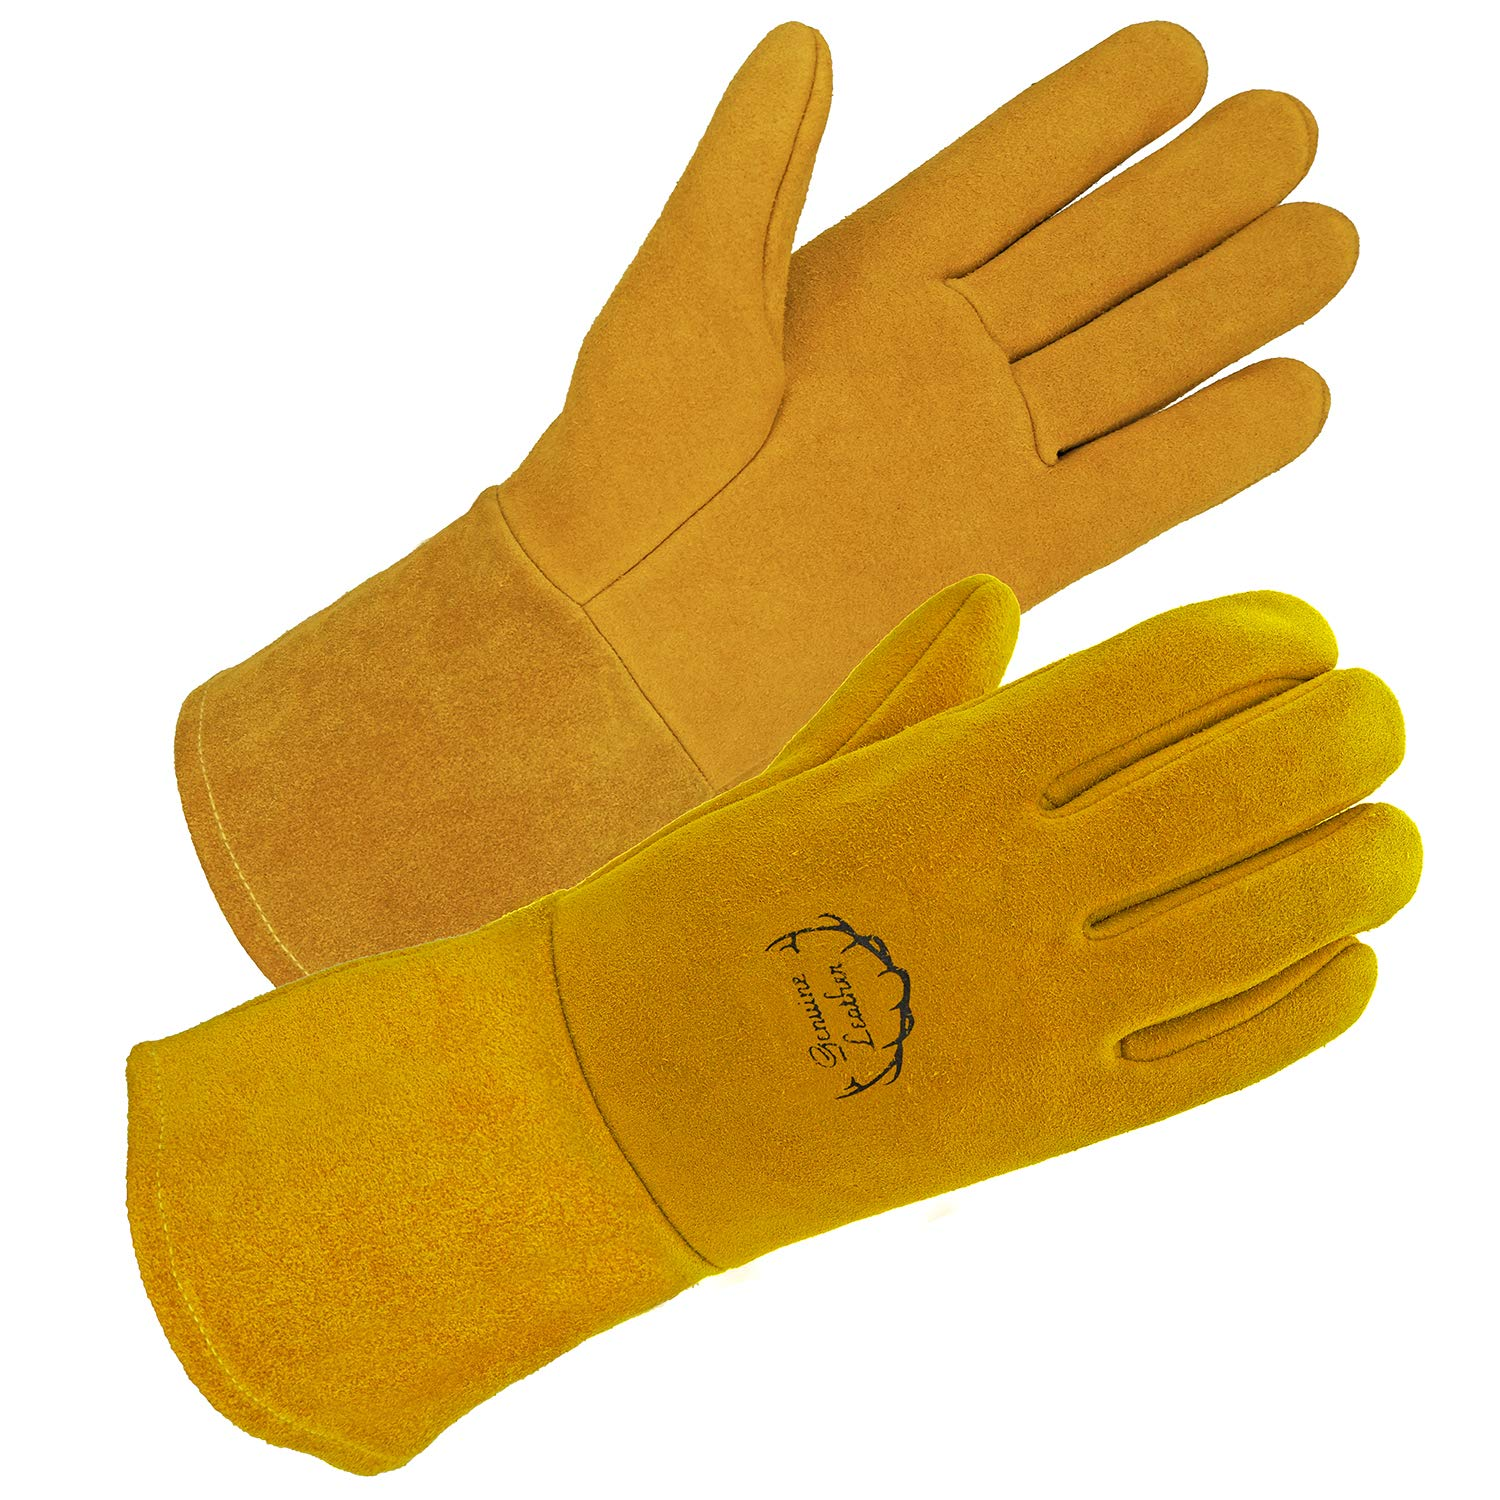 SD0039W/L - SKYDEER Premium Genuine Deerskin Leather Hi-Performance Welding Gloves